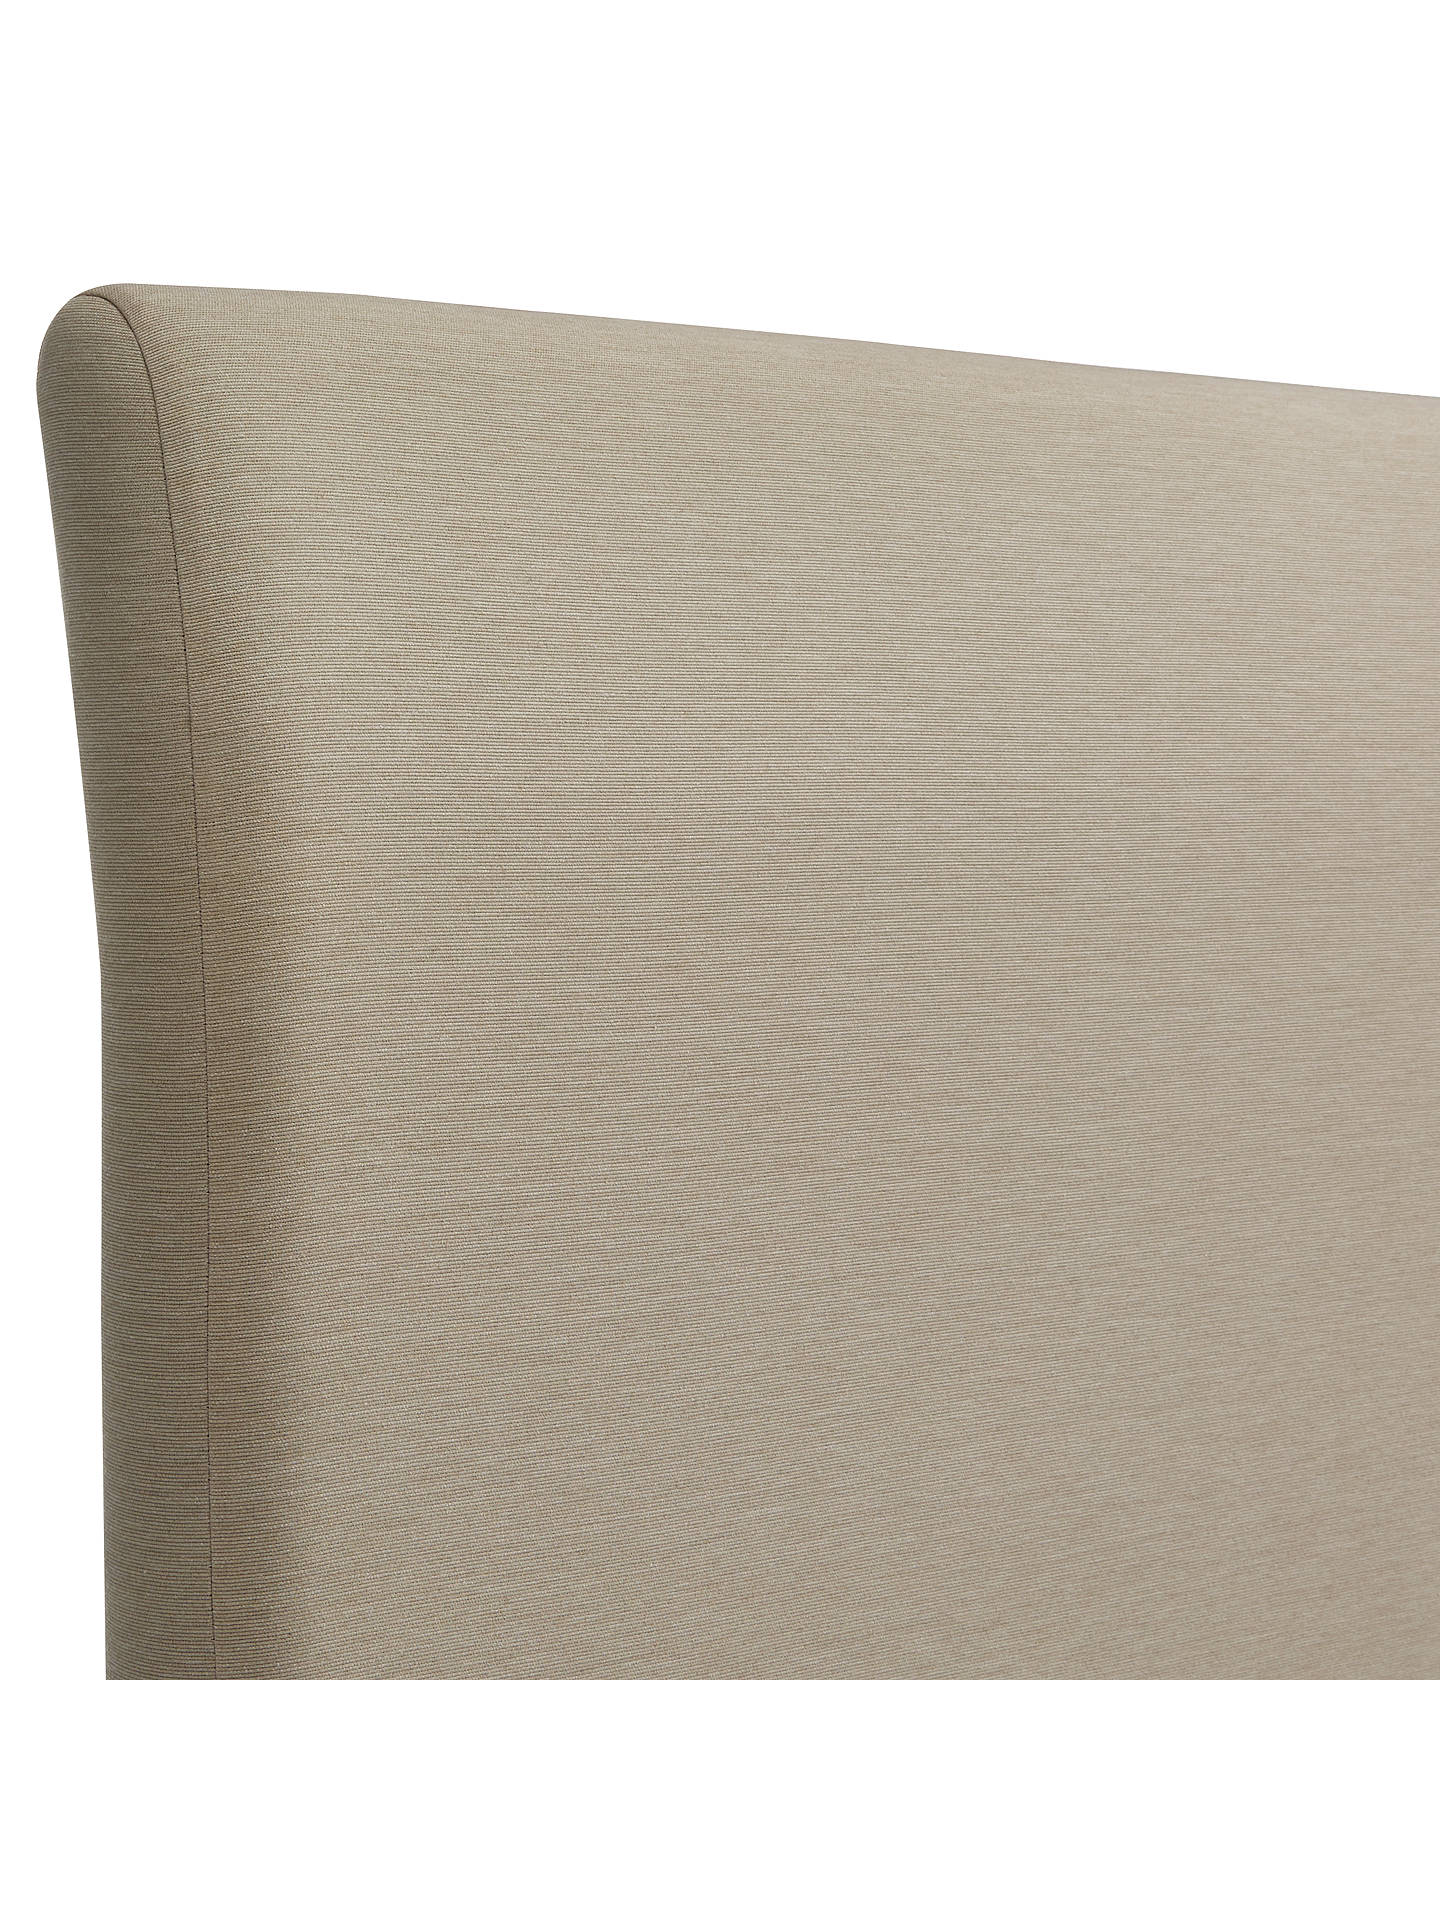 Buy John Lewis & Partners Natural Collection Bedford Strut Headboard, Pebble, Super King Size Online at johnlewis.com